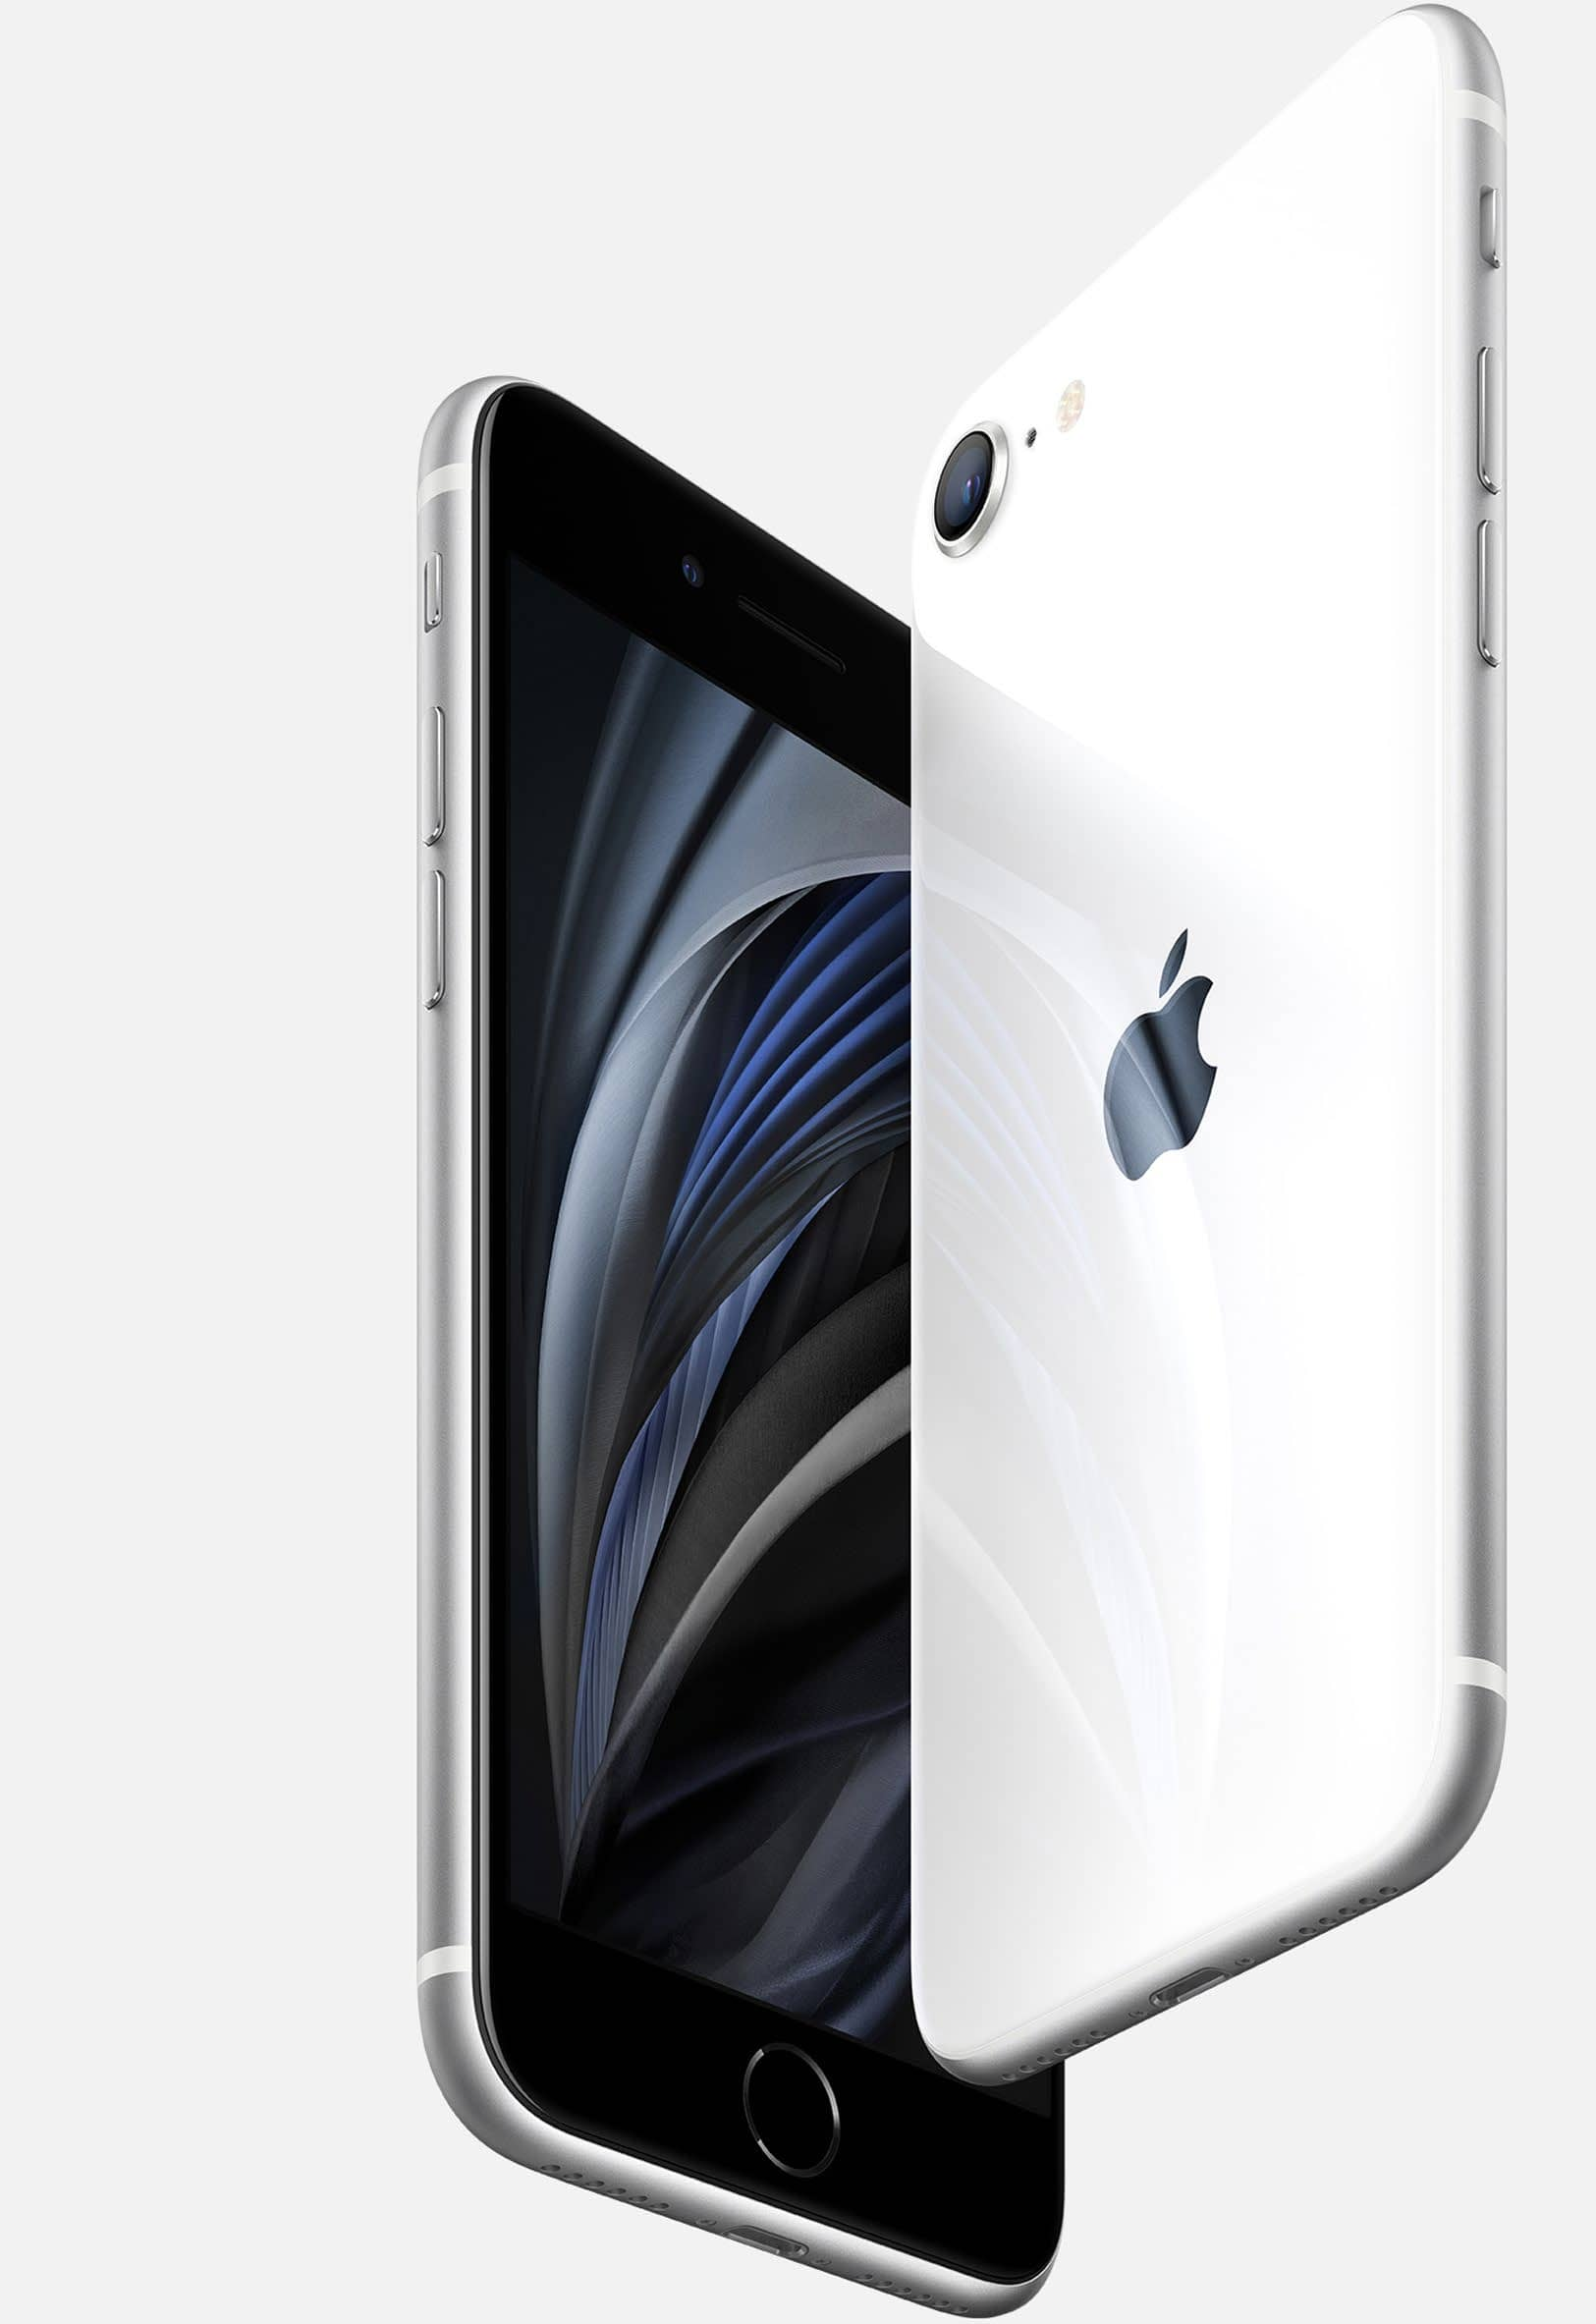 Return of the iPhone SE